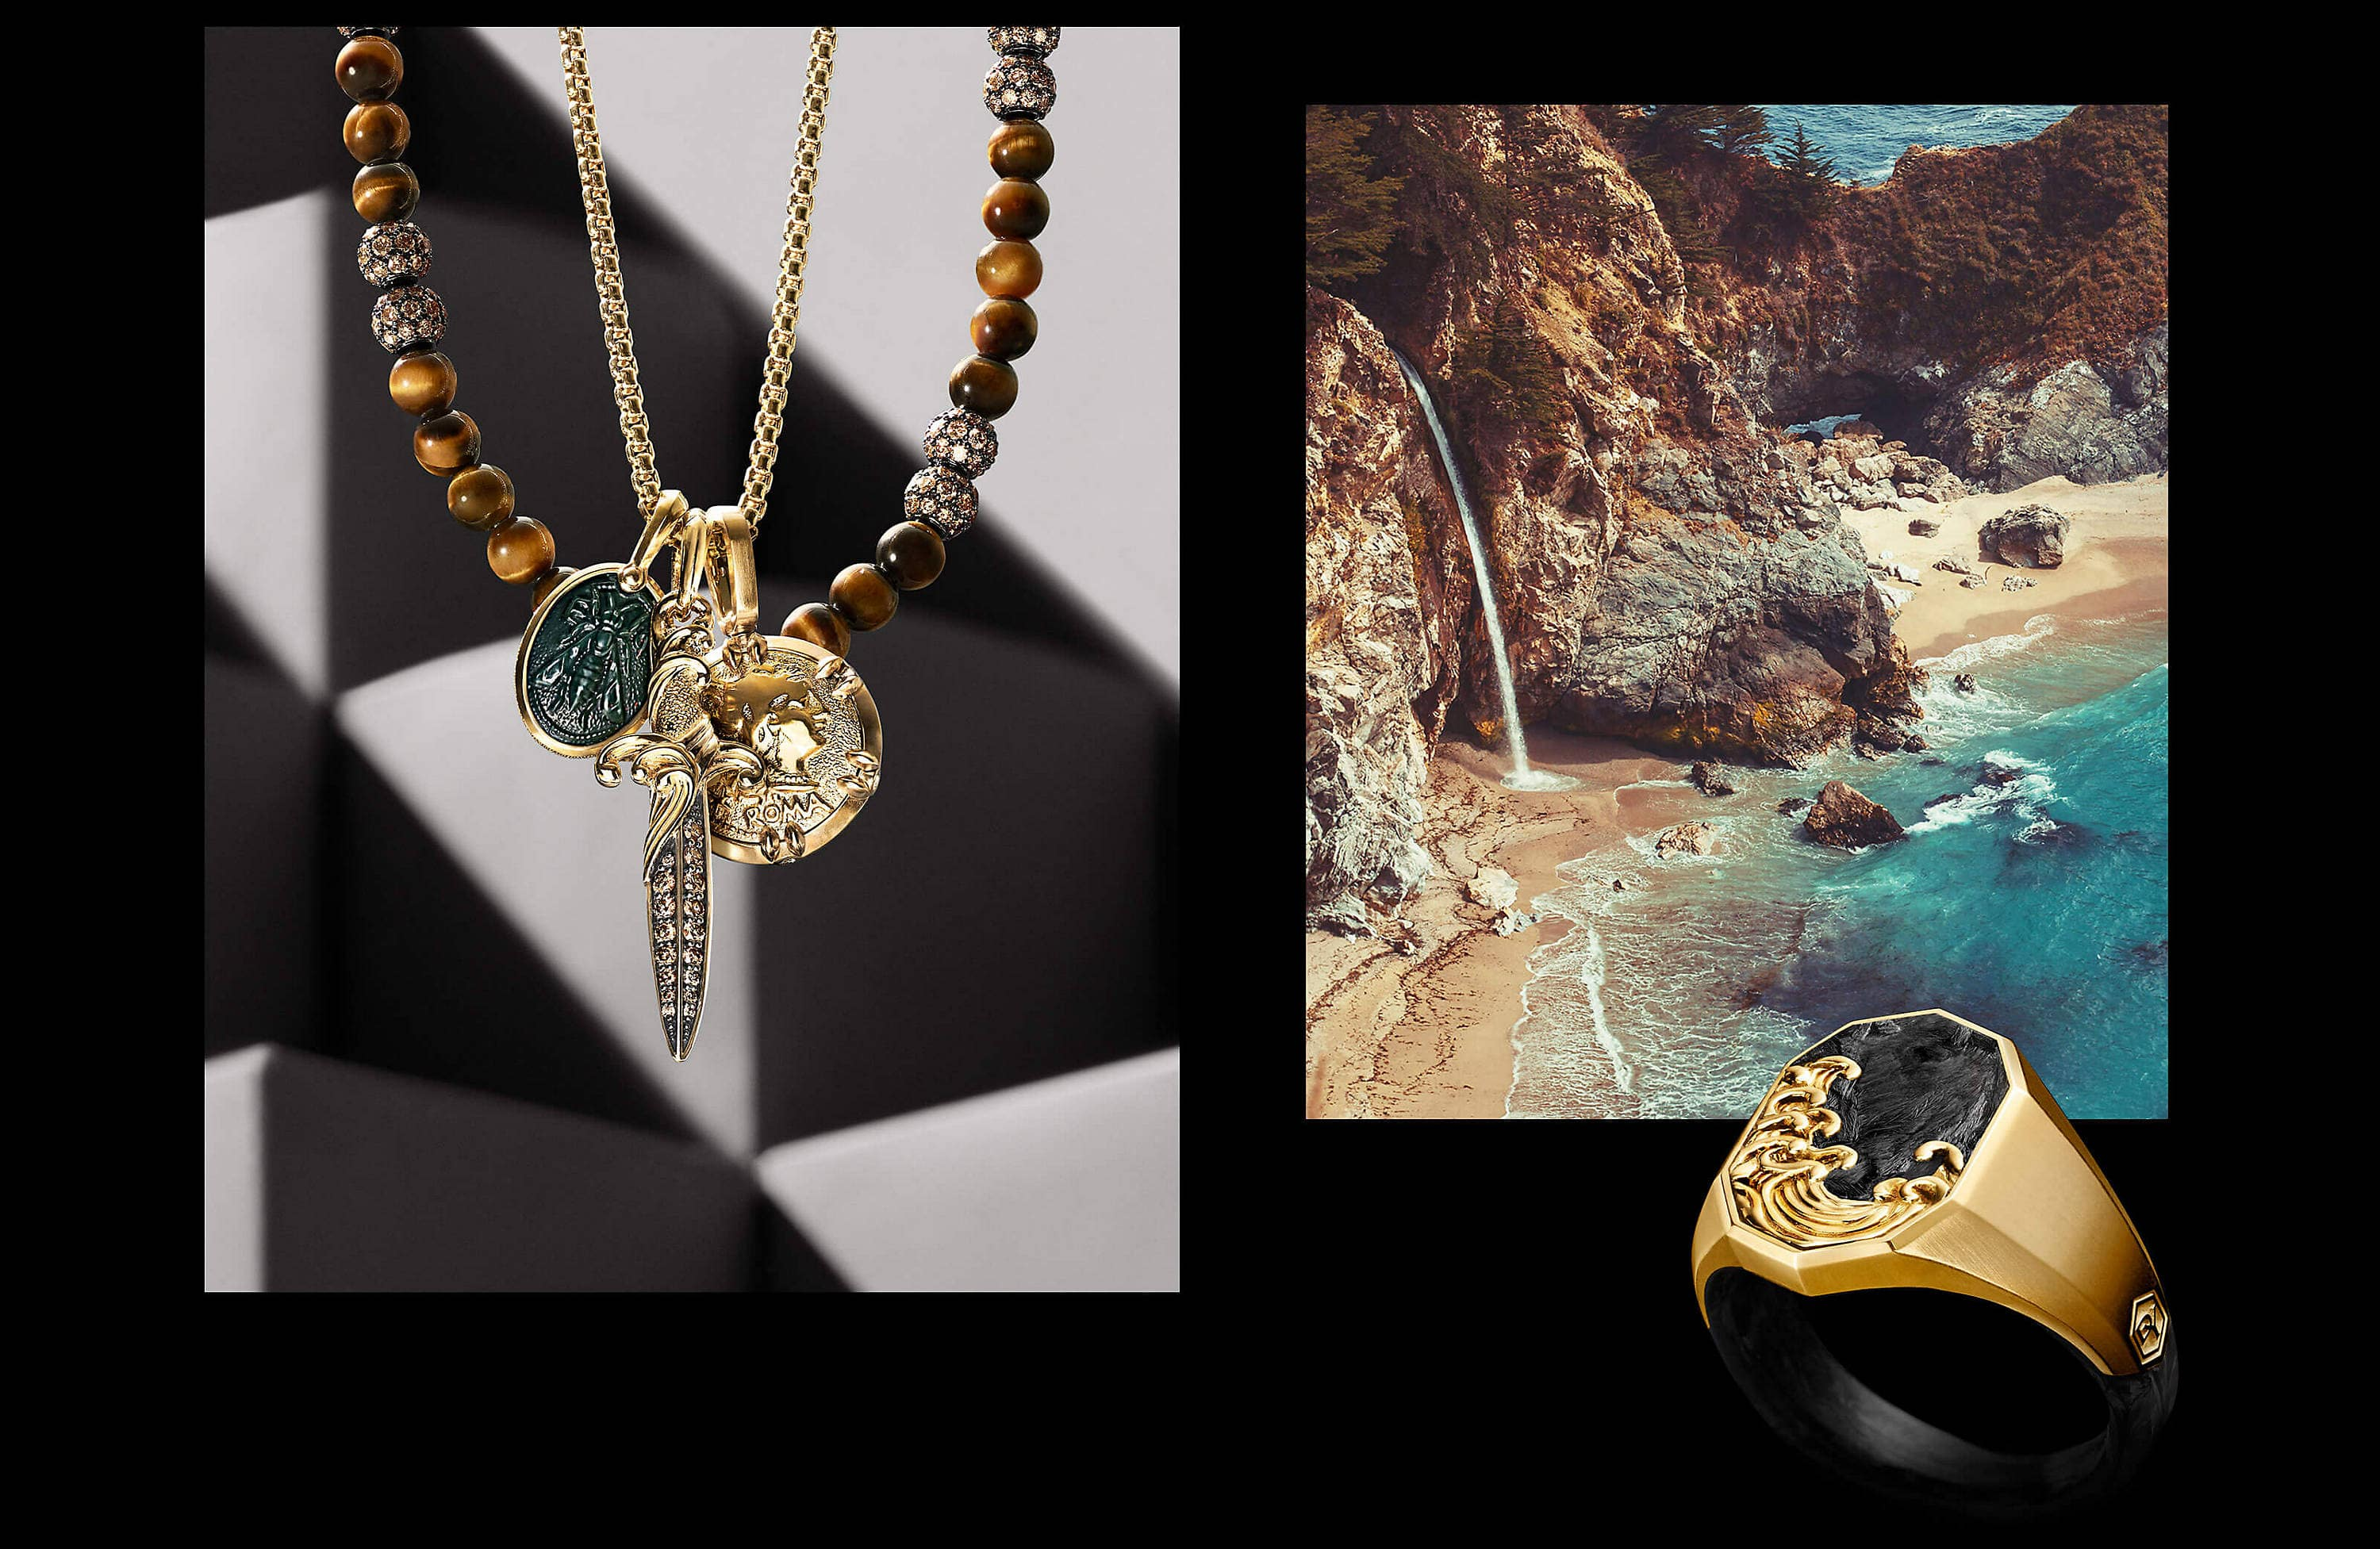 Two color photos are juxtaposed on a black background with white text. On the left is an image showing a David Yurman men's box chain necklace with three amulets hanging in front of a dark grey stone background with angular shadows. The jewelry is crafted from 18K gold with or without bloodstone. Behind the jewelry is a David Yurman men's Spiritual Beads necklace in tiger's eye with cognac diamonds. On the right is a photo of a rugged cliff next to the ocean with water streaming from one of the cliffs.